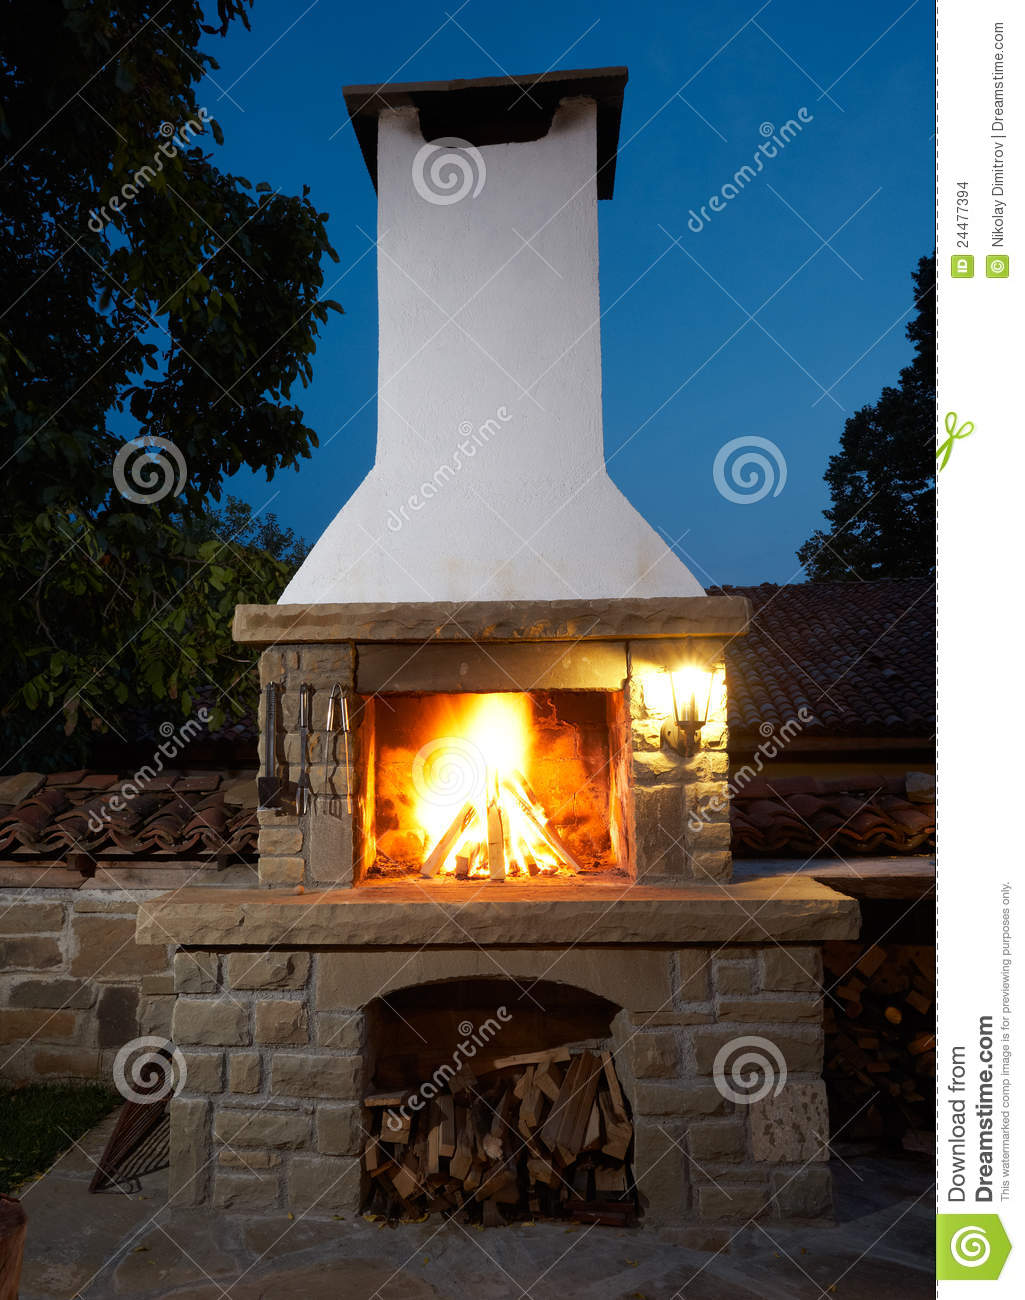 Barbecue Fireplace Stock Images - Image: 24477394